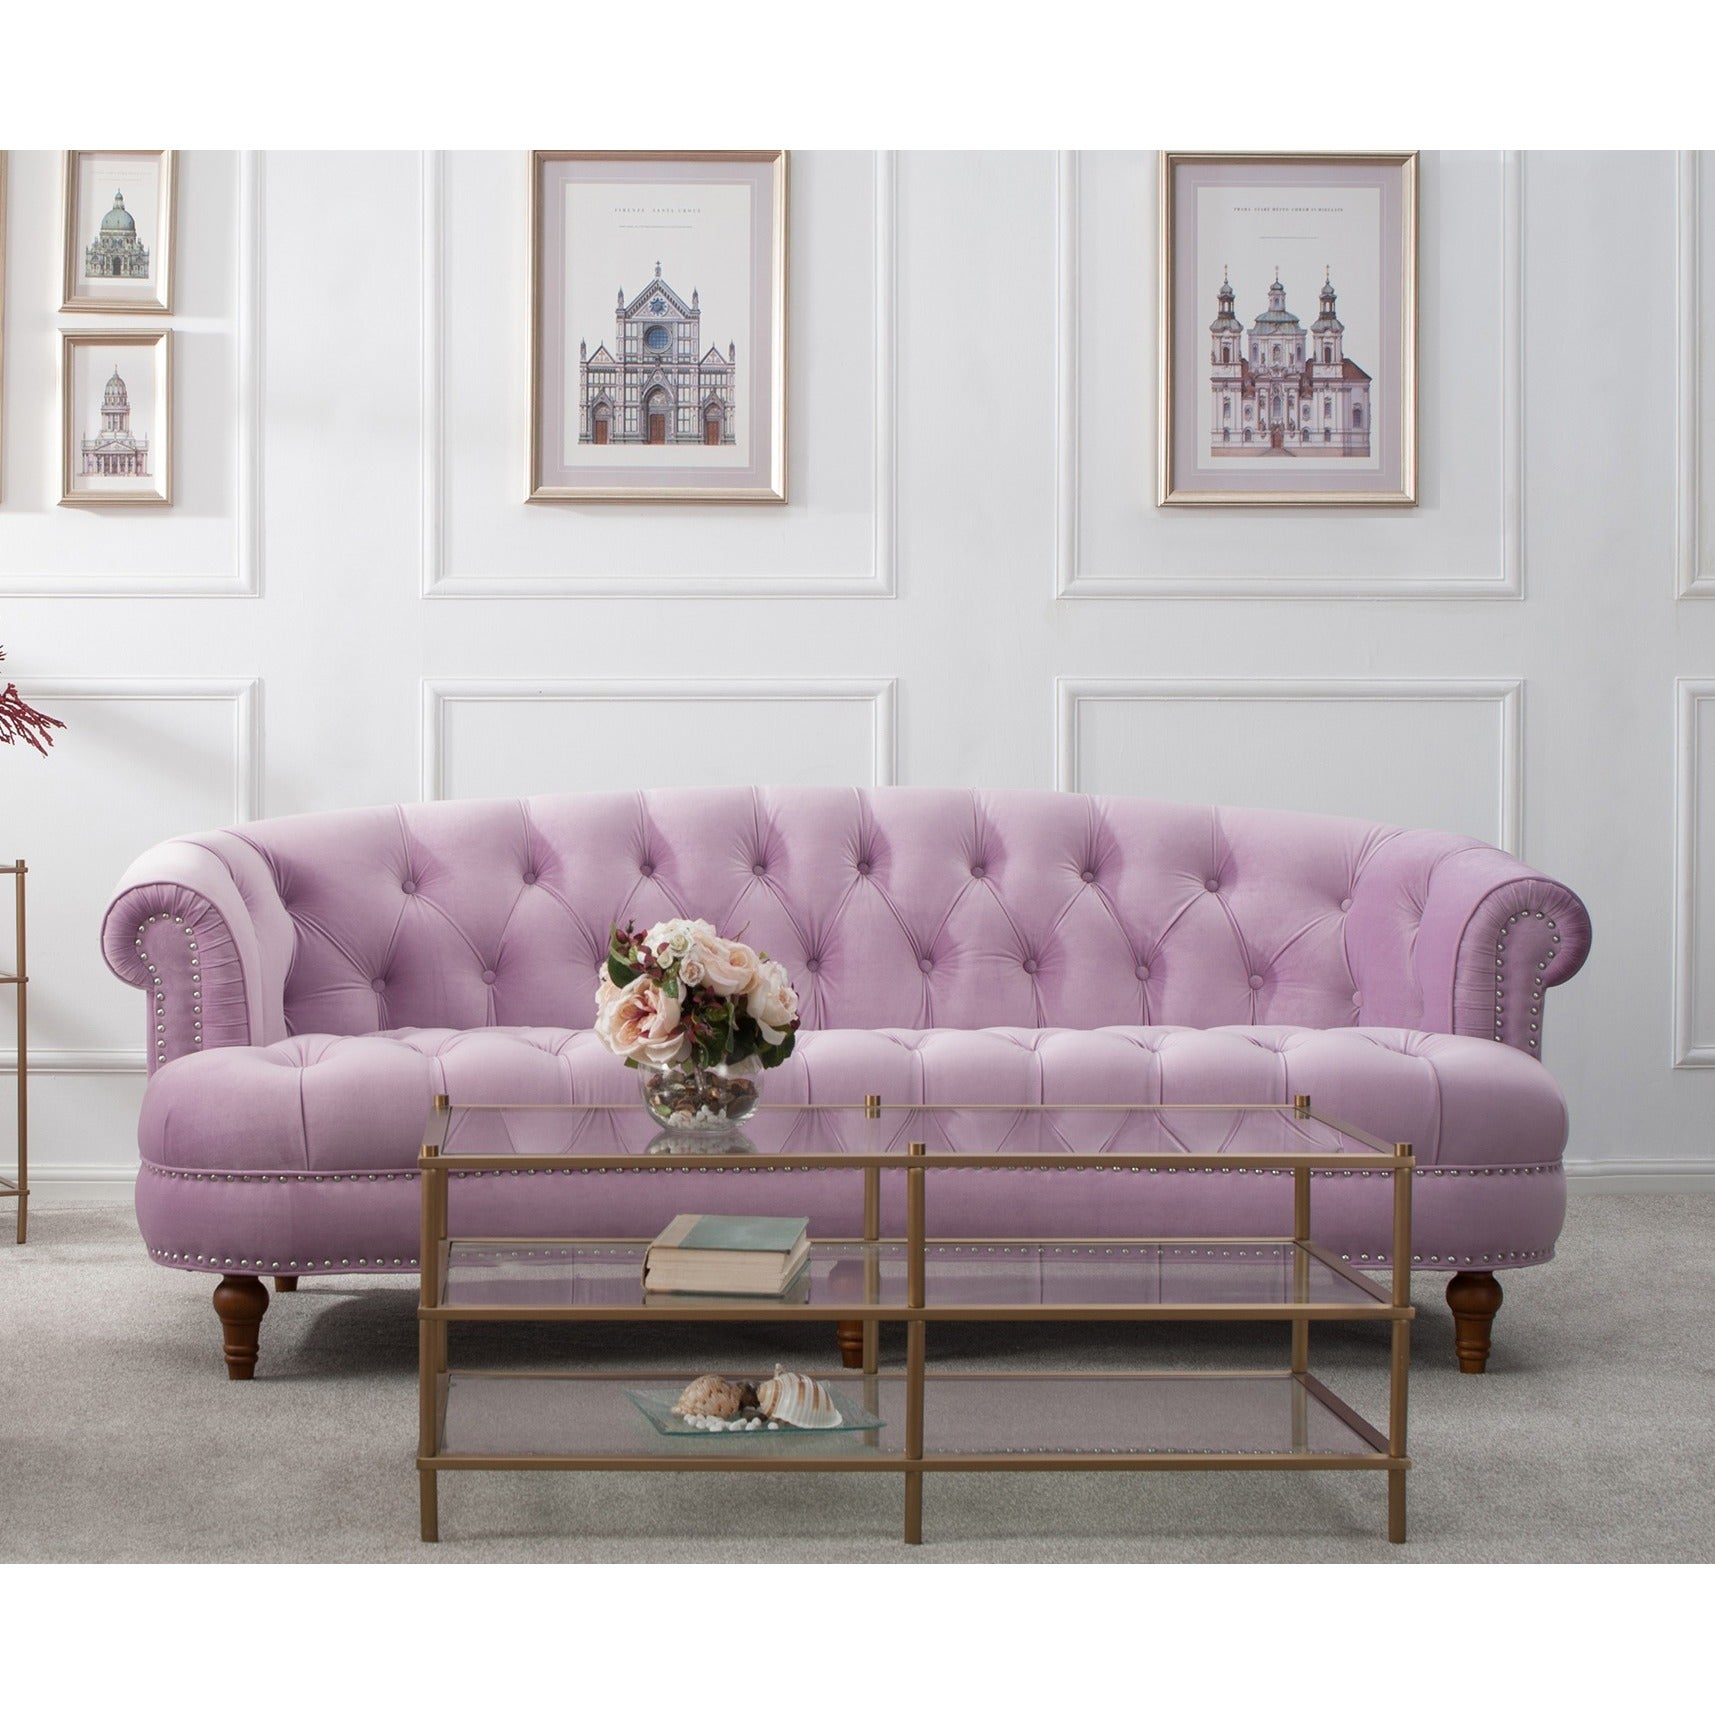 Lovely Jennifer Taylor La Rosa Chesterfield Sofa   Free Shipping Today   Overstock    17191171